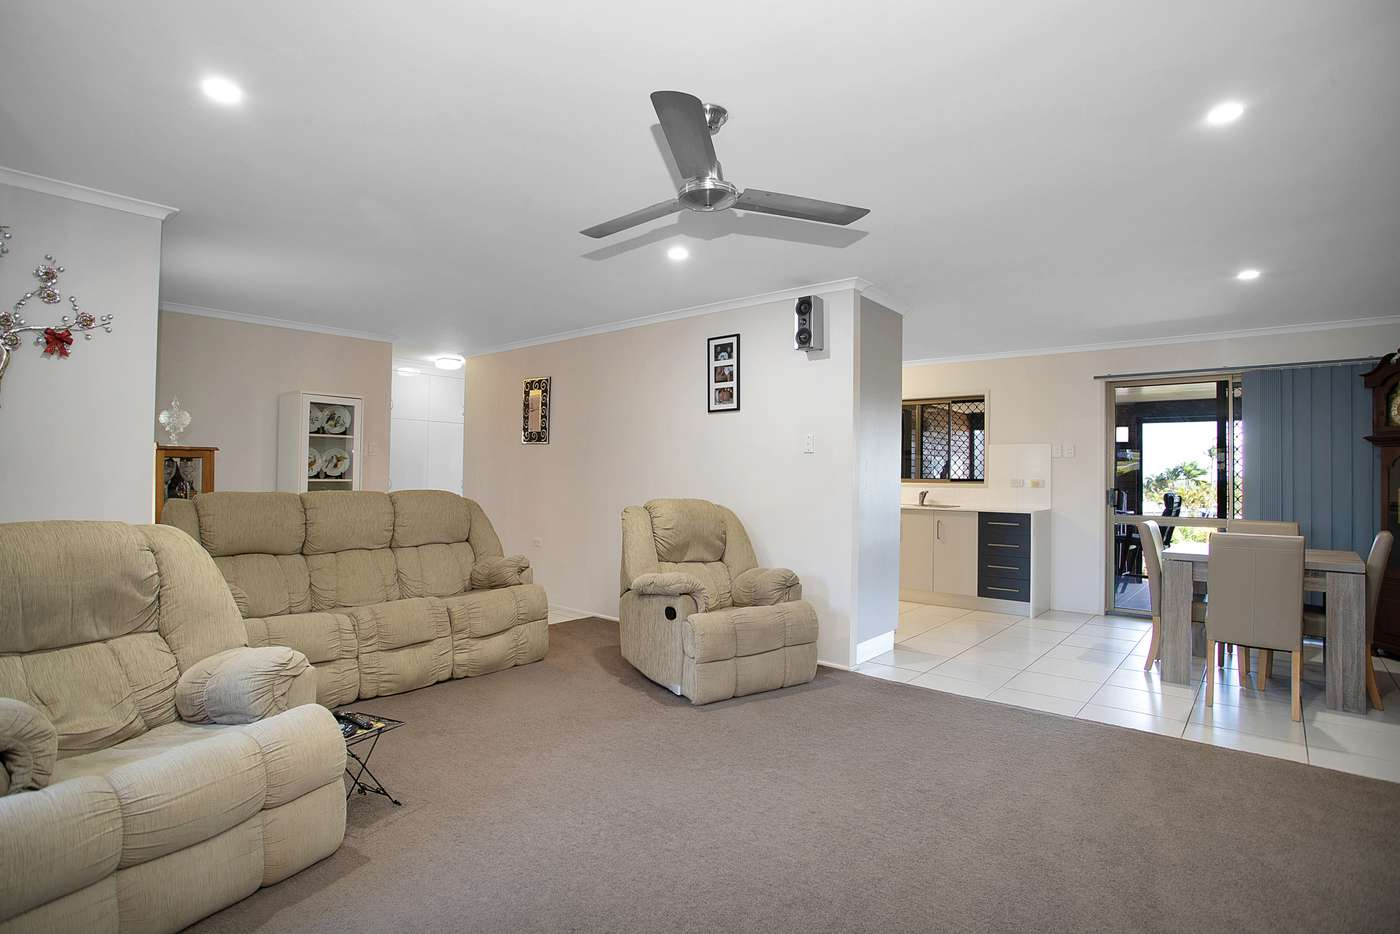 Sixth view of Homely house listing, 8 Challenger Street, Beaconsfield QLD 4740